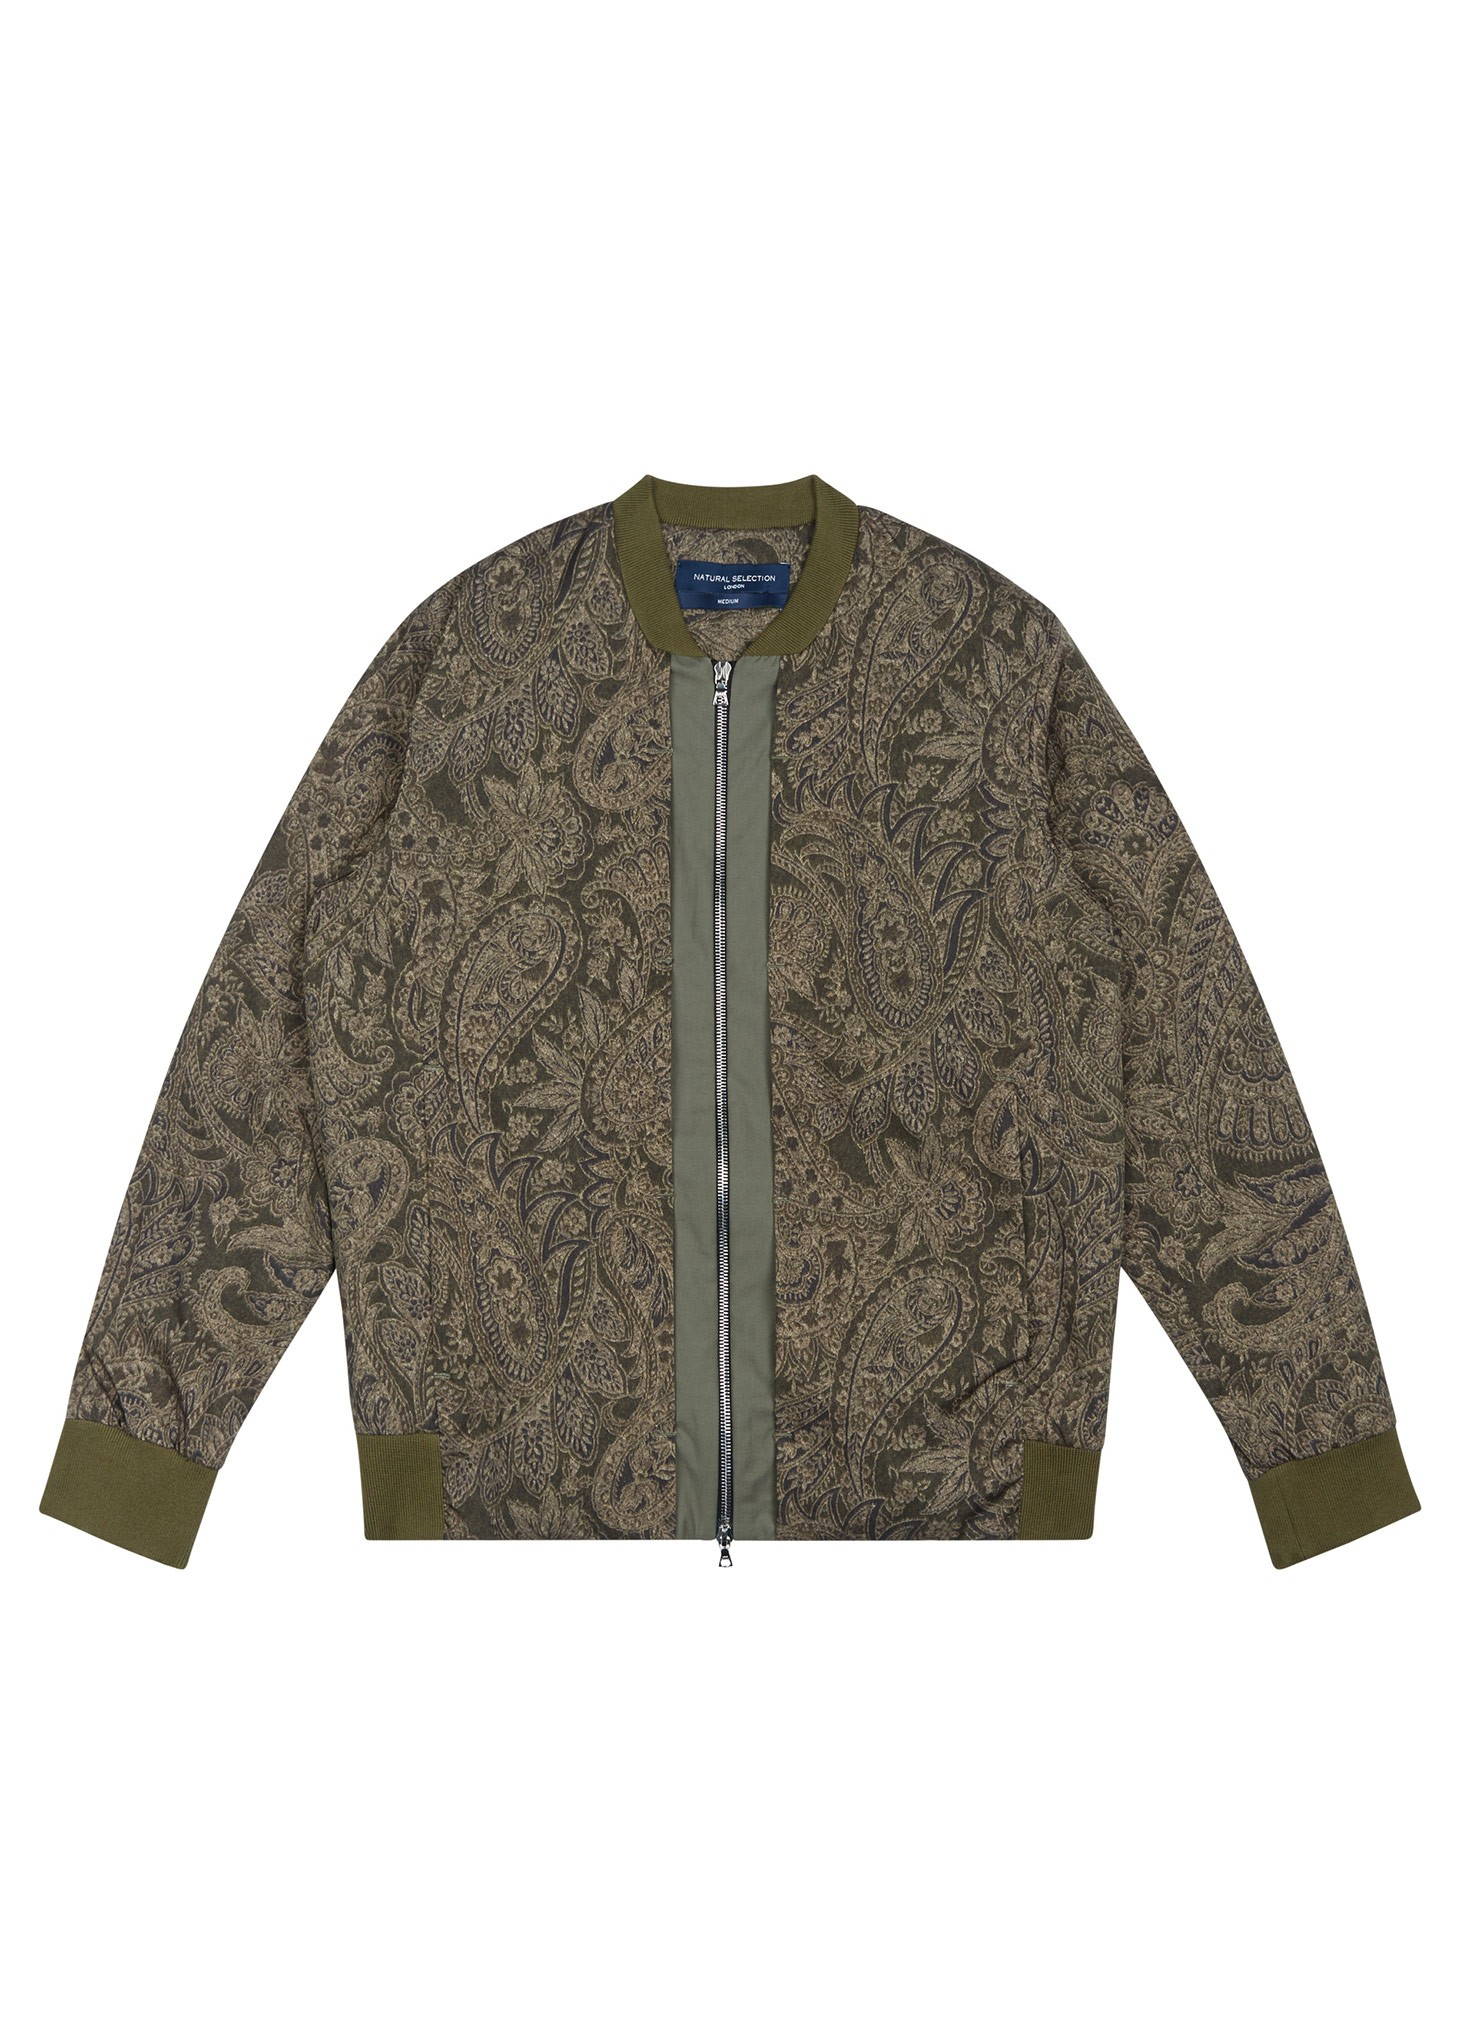 Natural Selection Type2 Zip Olive Paisley